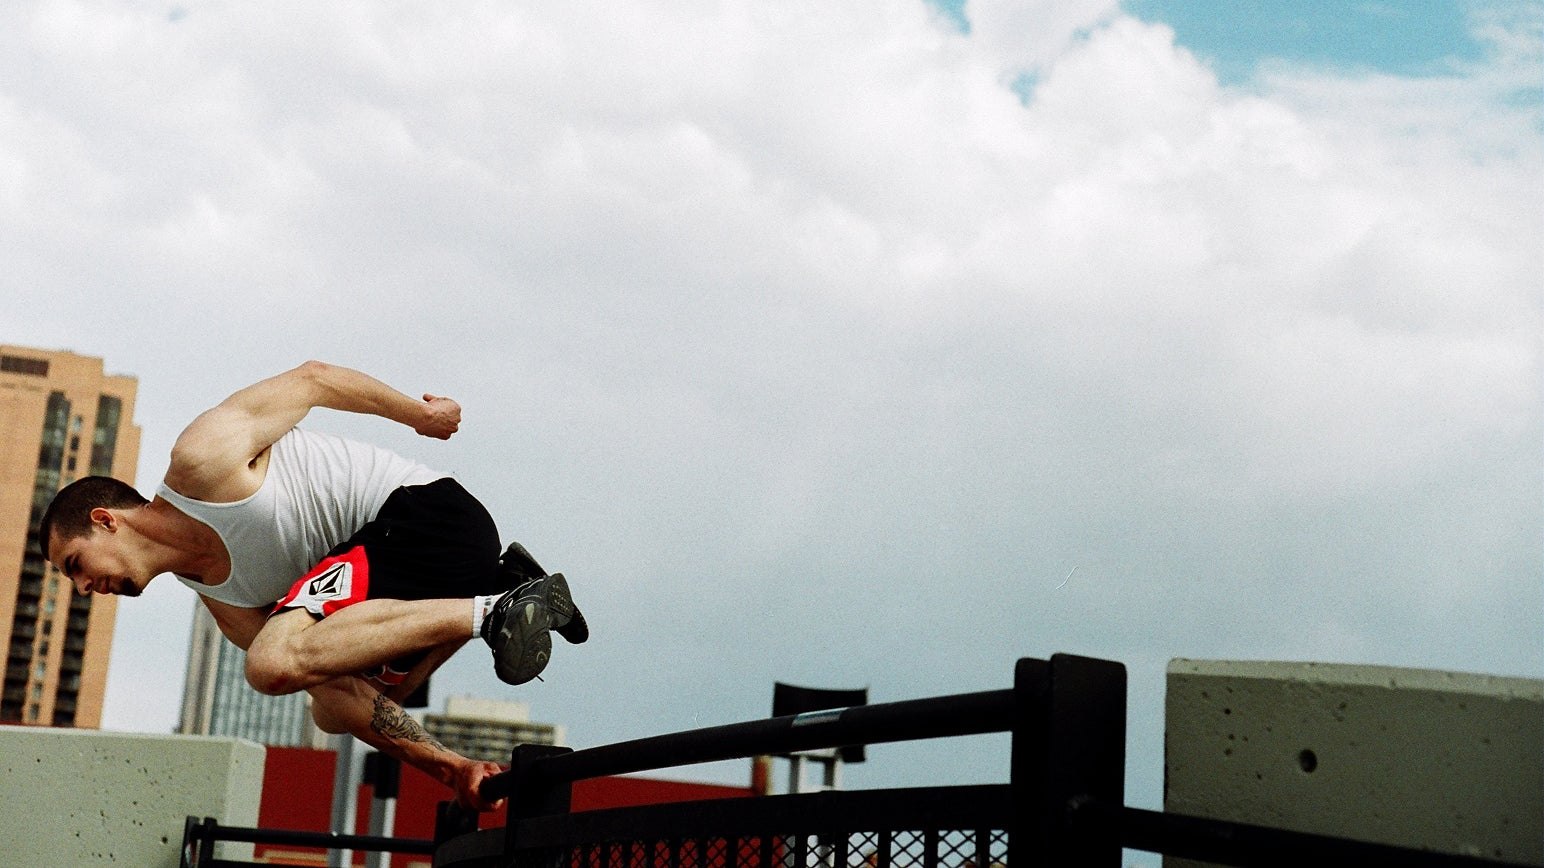 The Difference Between Parkour And Freerunning